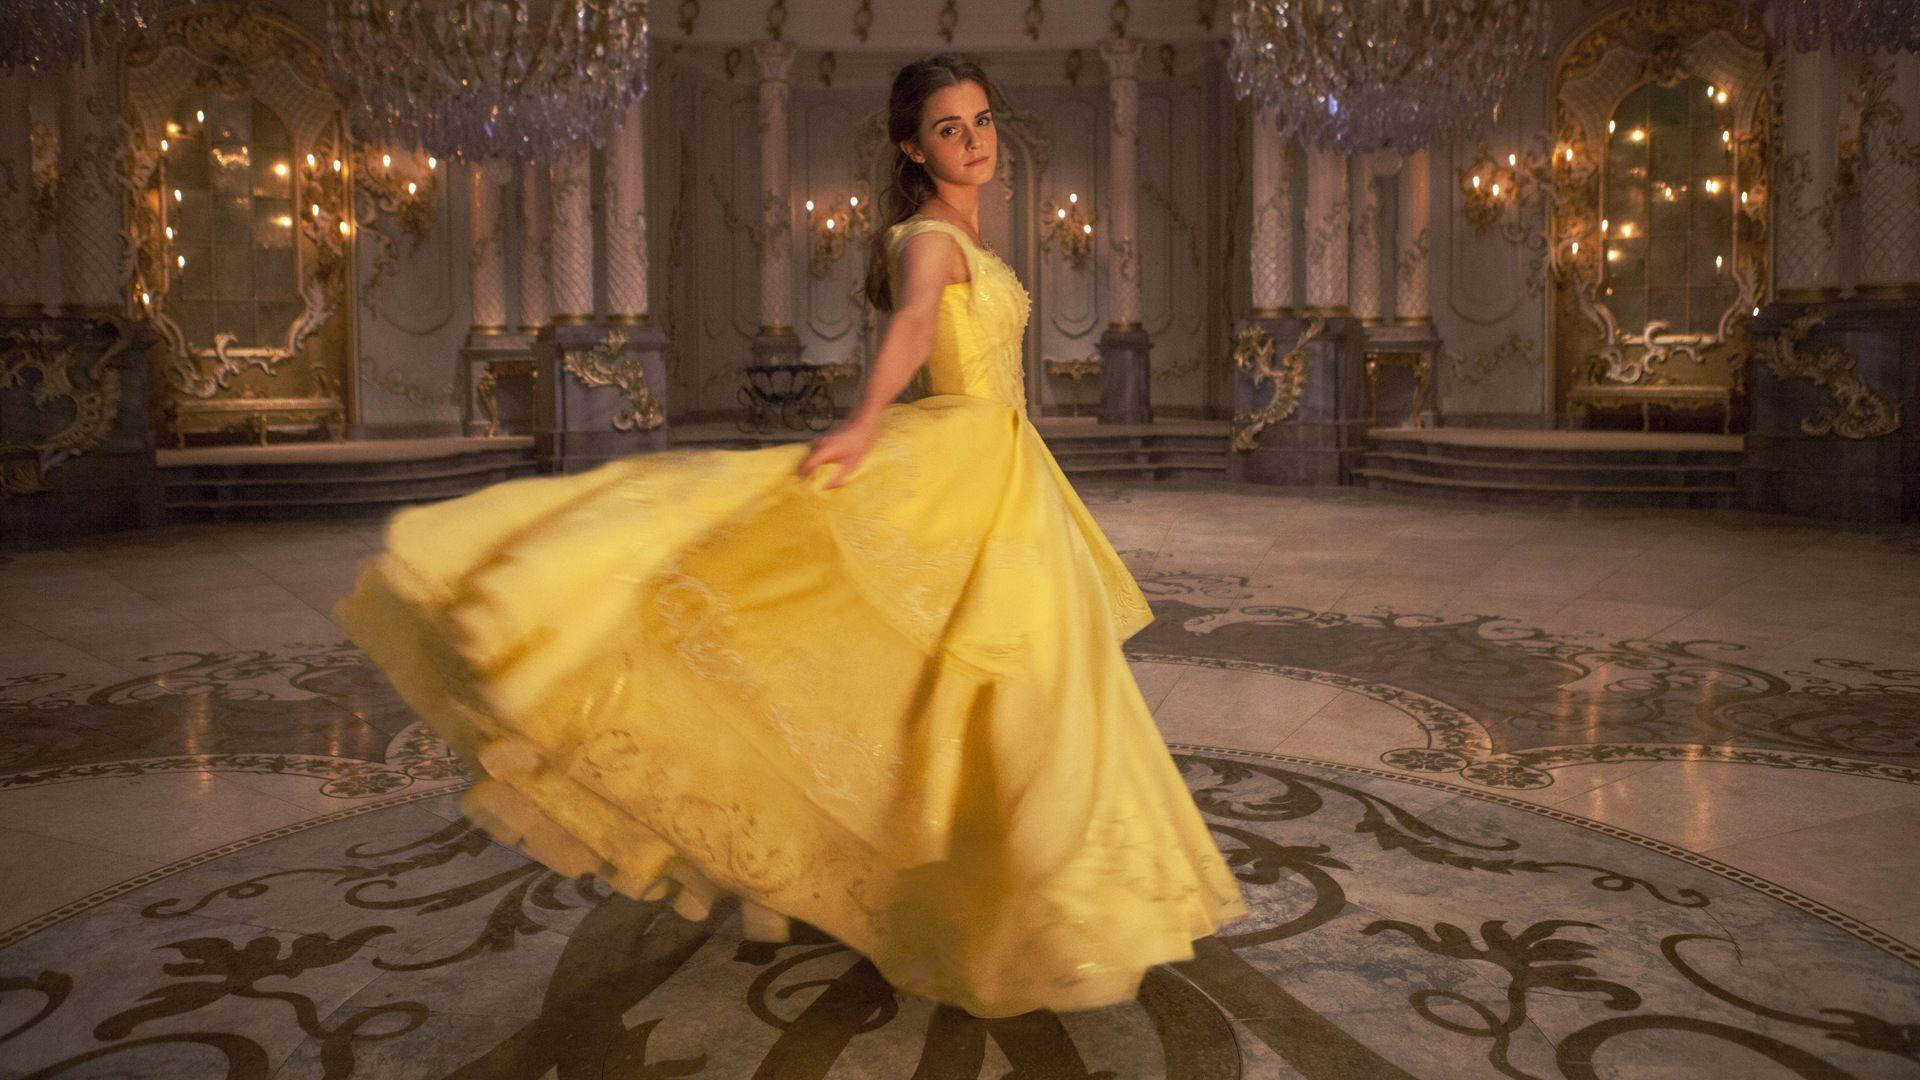 beauty and the beast 2017 hd wallpapers - wallpaper cave